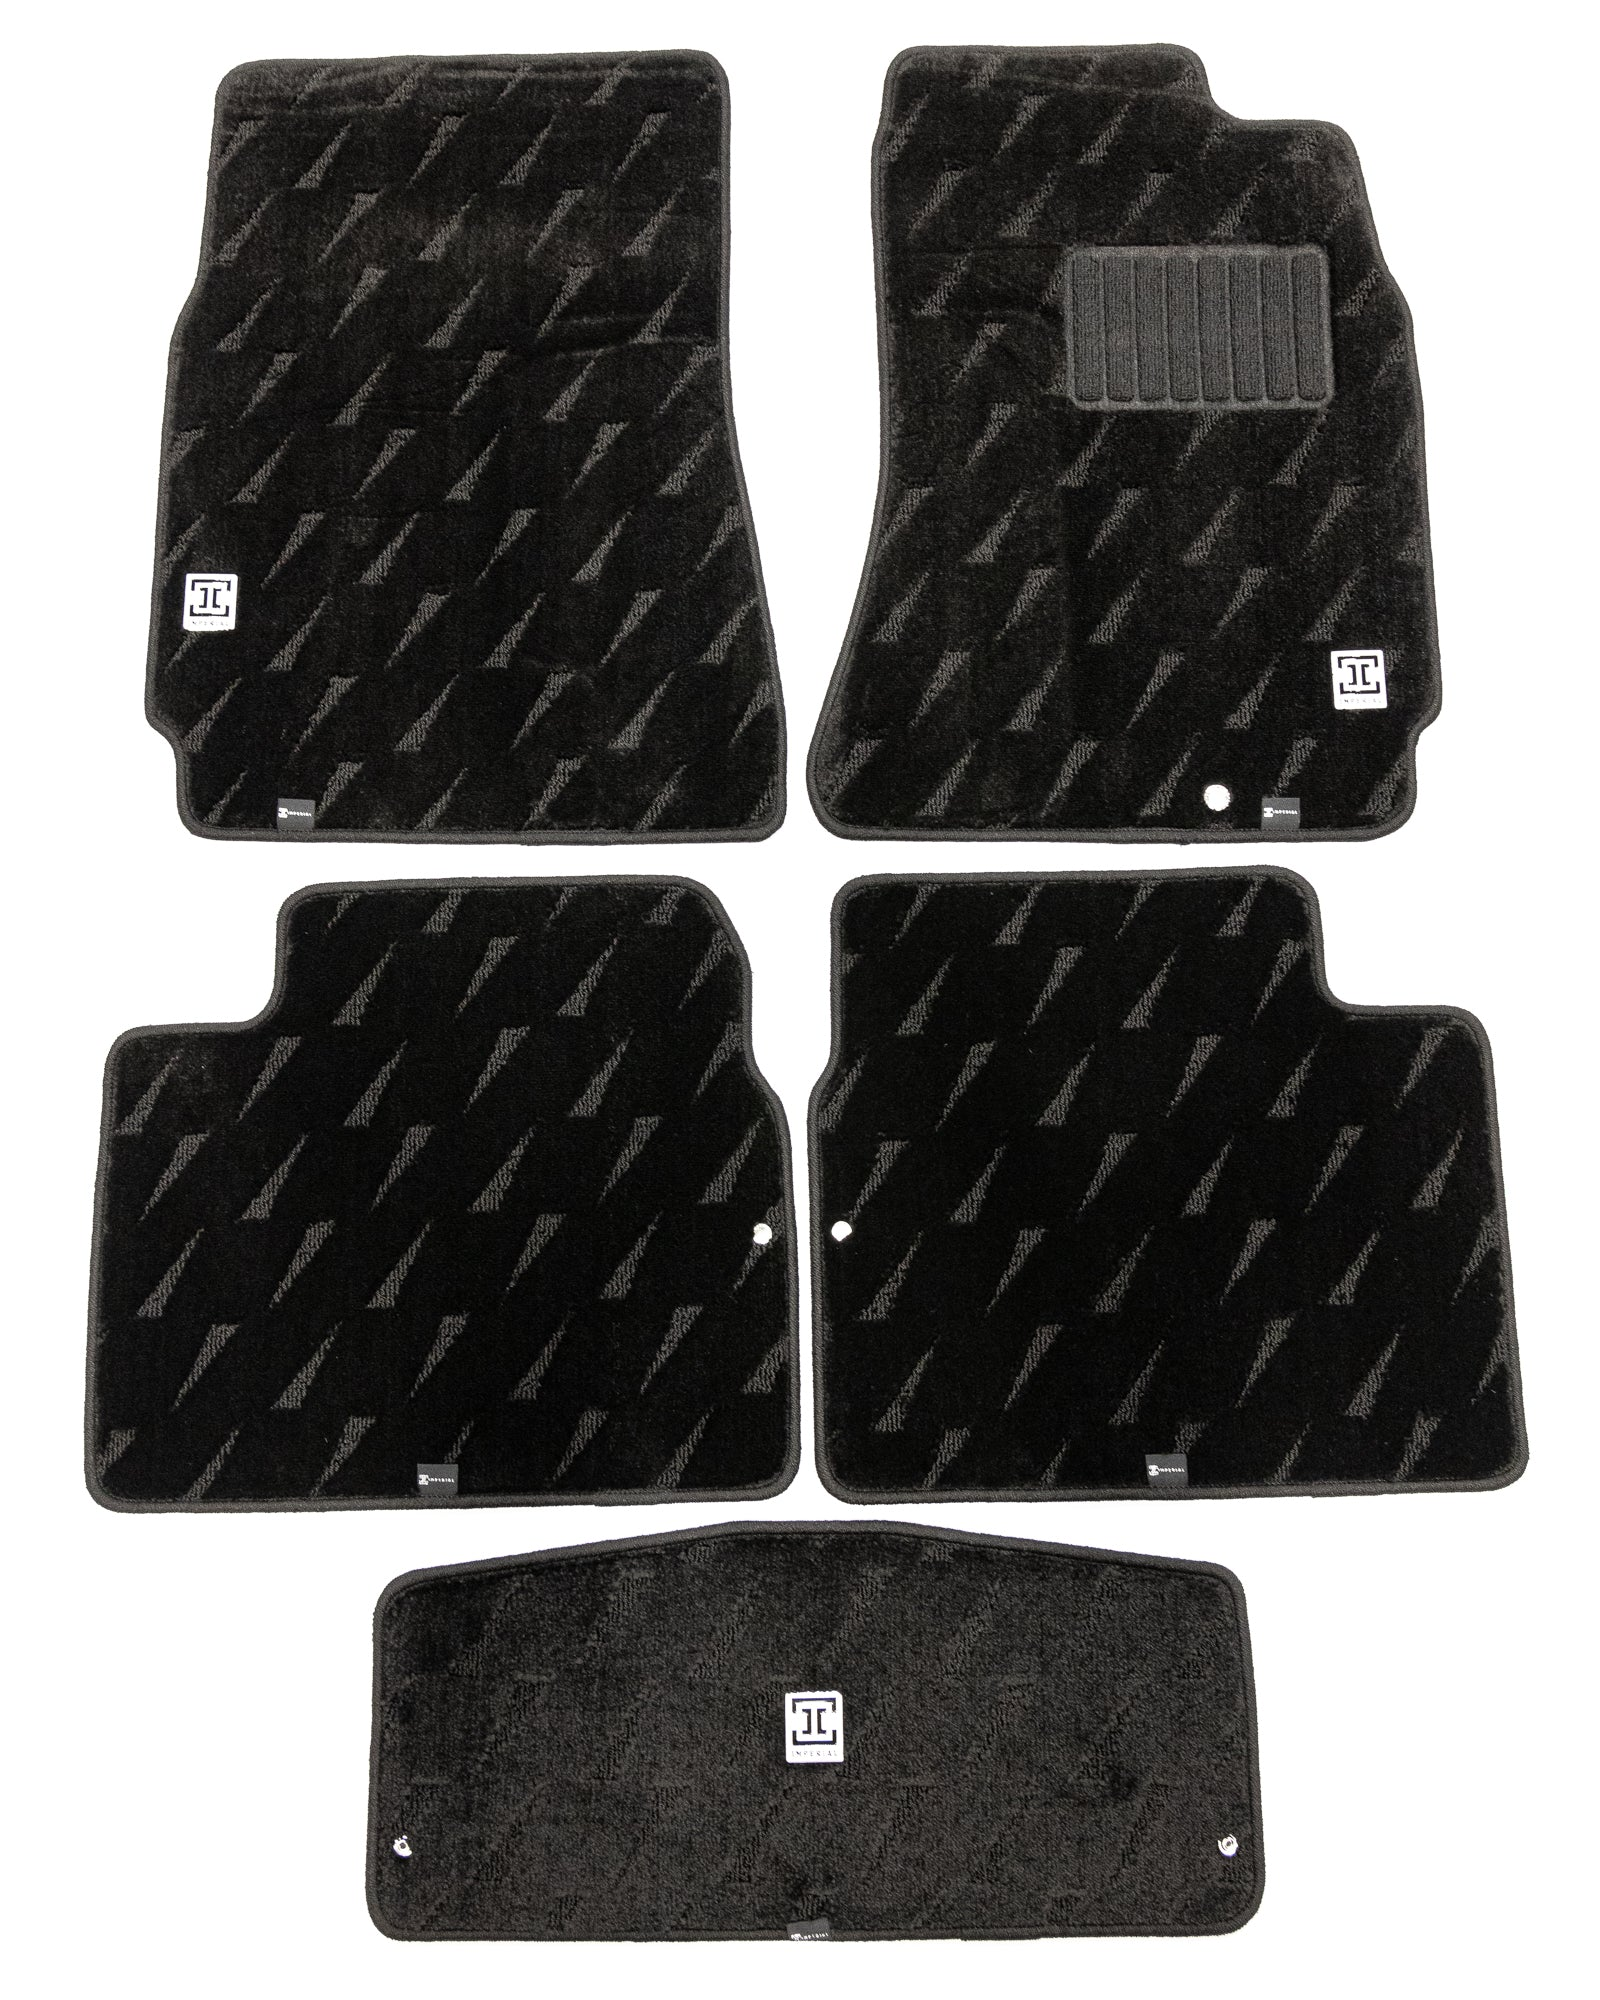 Imperial 1994-1998 Nissan Skyline R33 Coupe and Sedan (RWD Models Only) Floor Mats 5 Piece Set